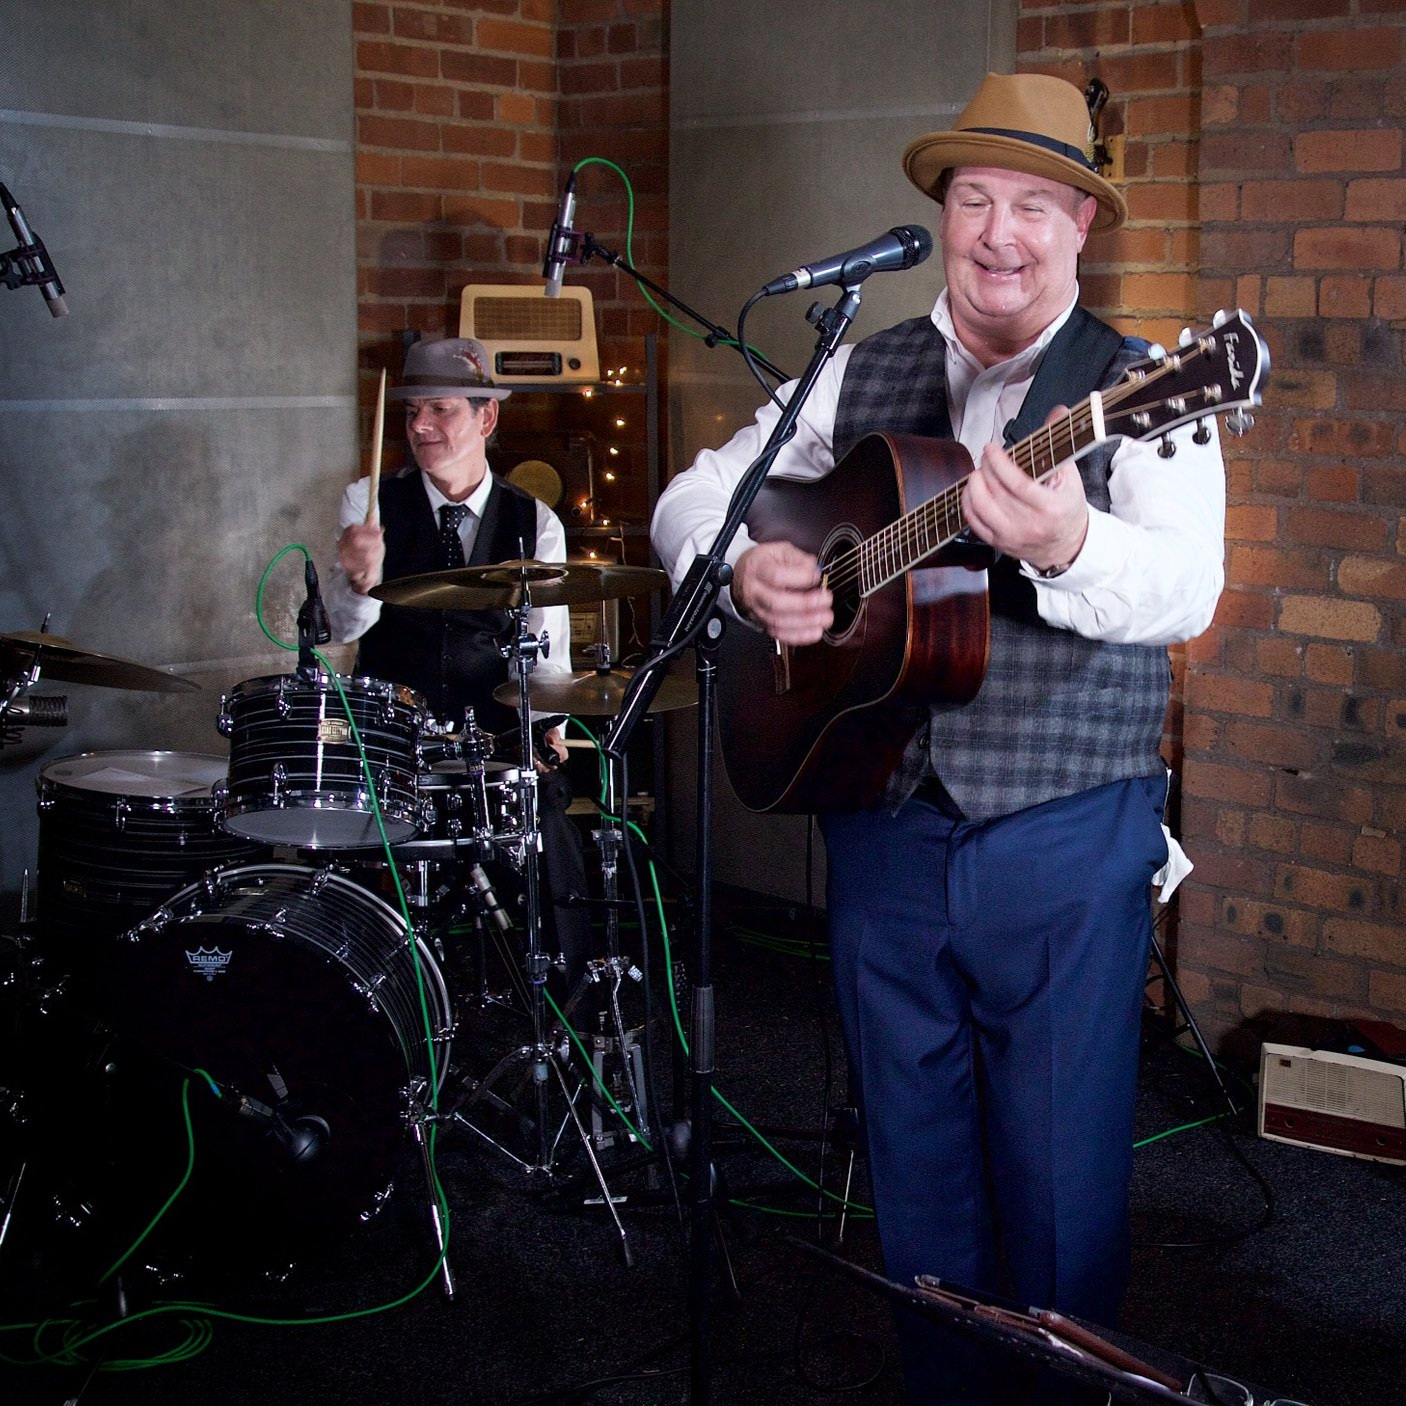 ALEX DARLEY JR TRIO - A sophisticated rhythm section complimented by unique swing style guitar and Smooth Modern vintage vocals. They perform a mix of lively upbeat swing arrangements of modern popular tunes and jazz swing standards.